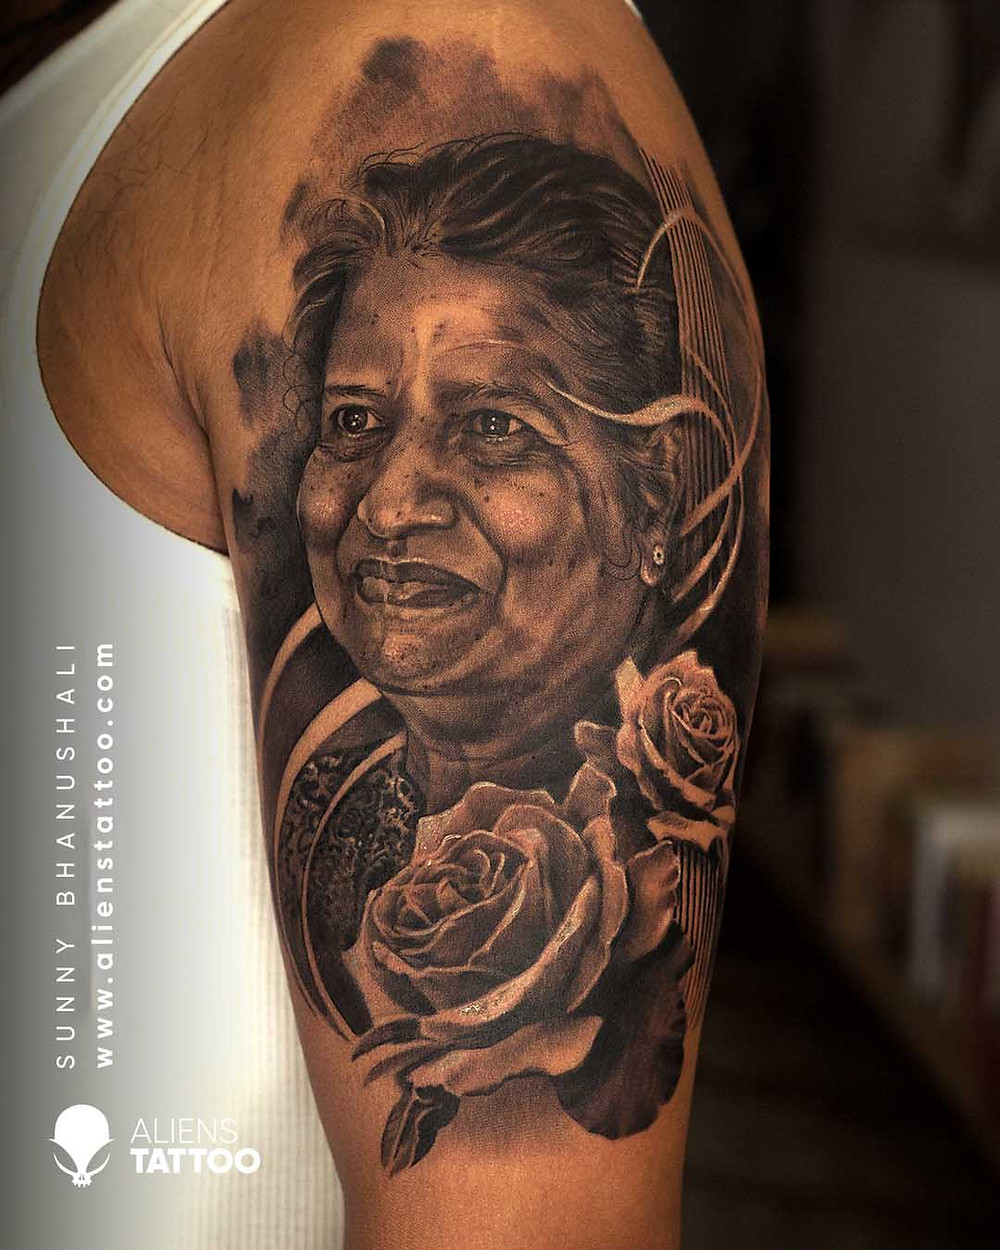 Black and white portrait tattoo with roses made at Aliens Tattoos India